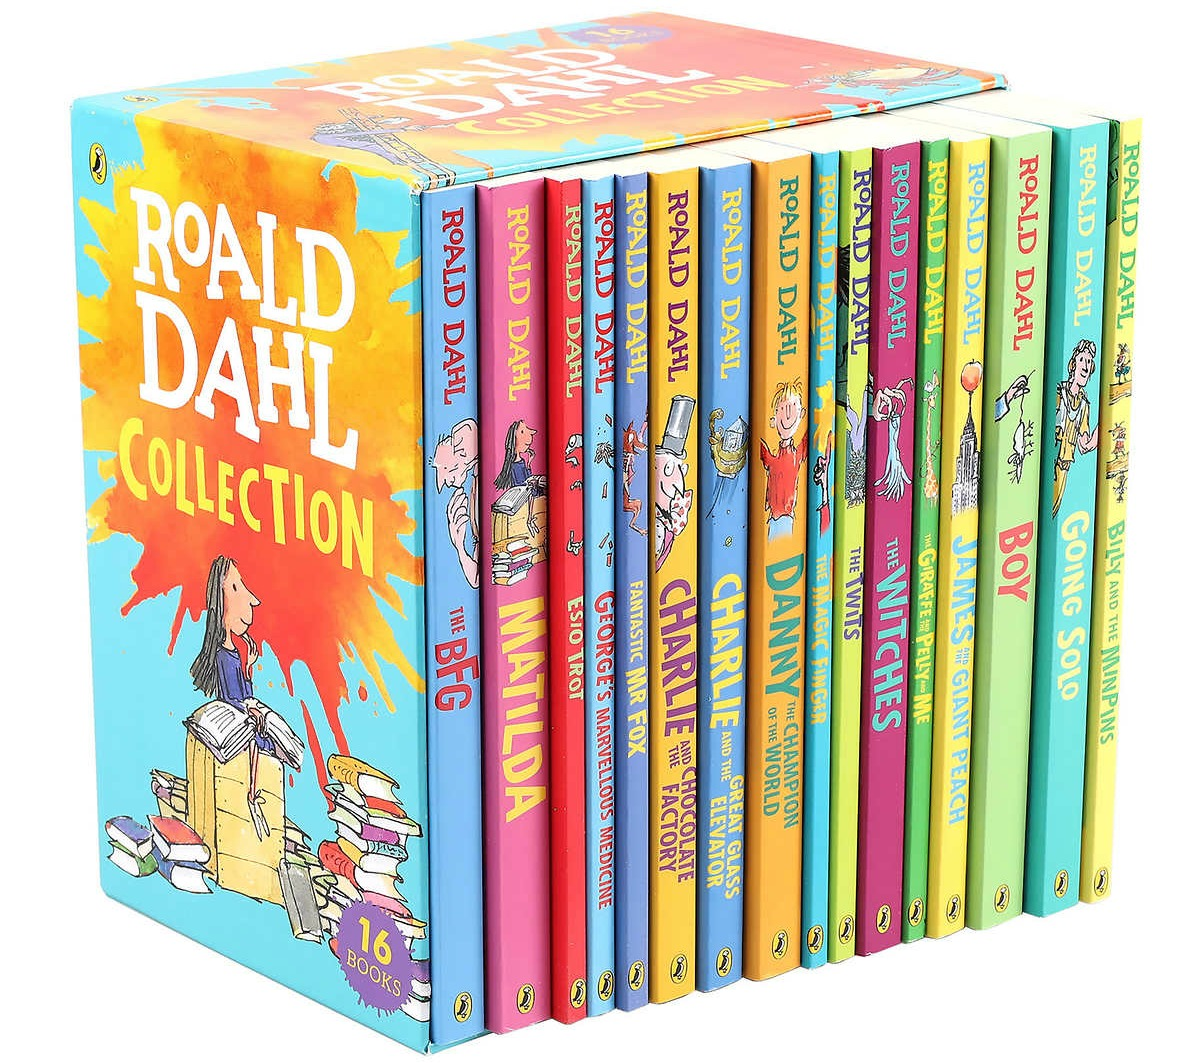 collection of paperback roald dahl books in a box